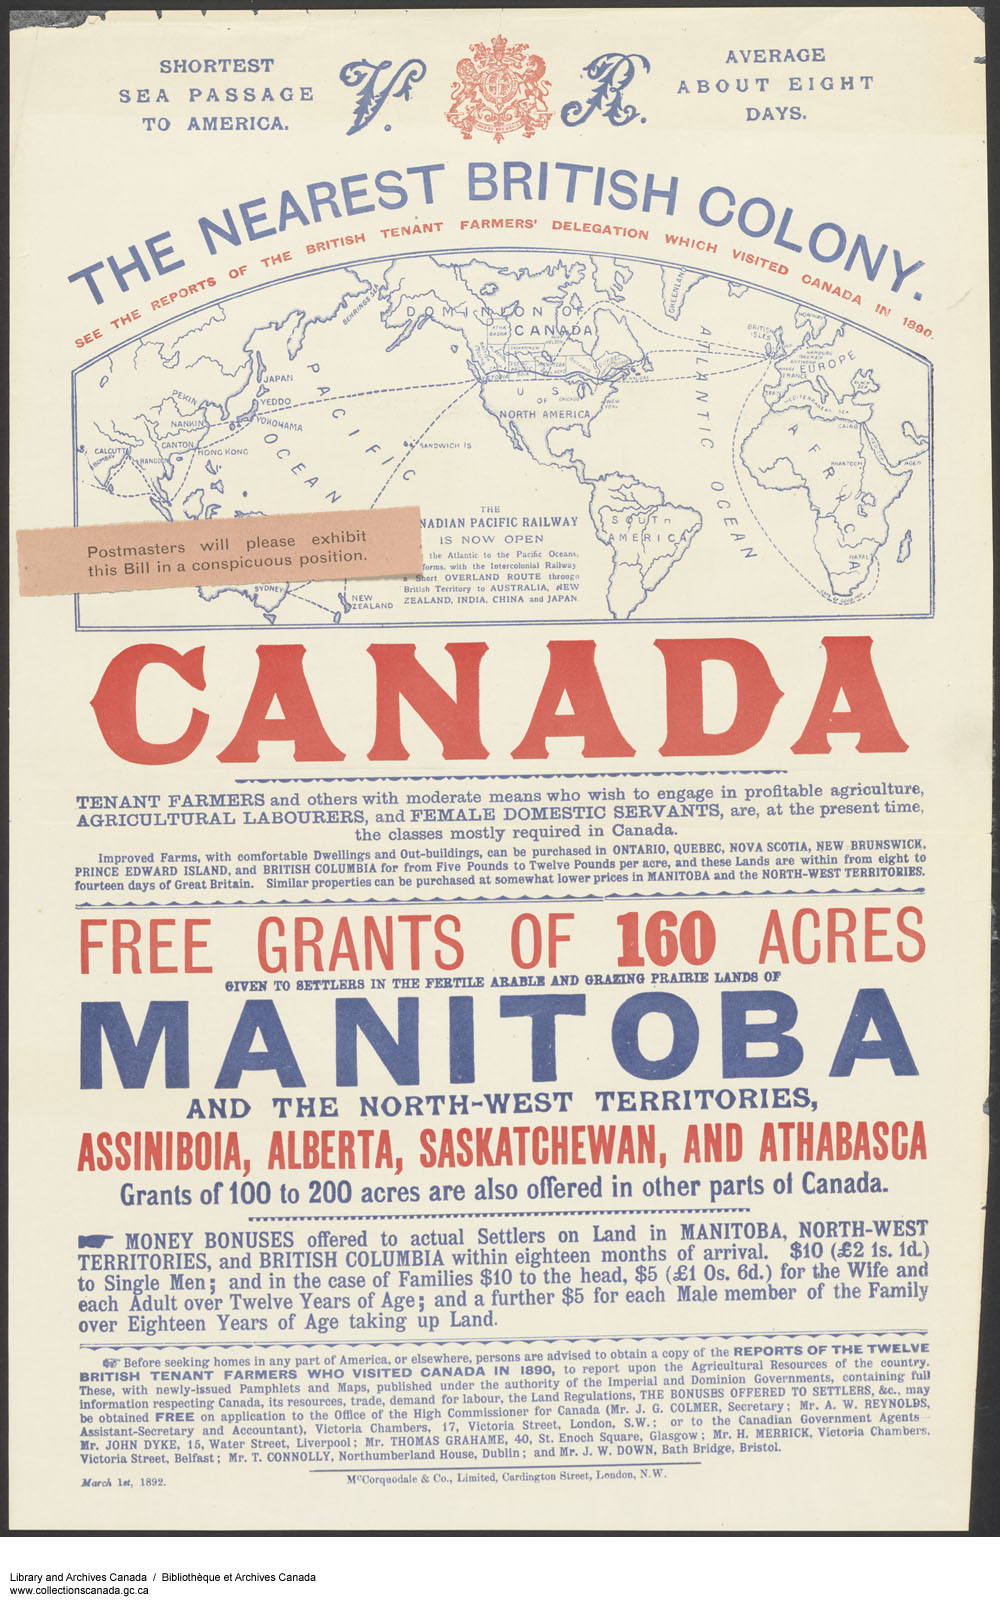 Poster design 19th century - Broadside With Map Showing Travel Routes To Canada And A Crest Flanked By The Letters